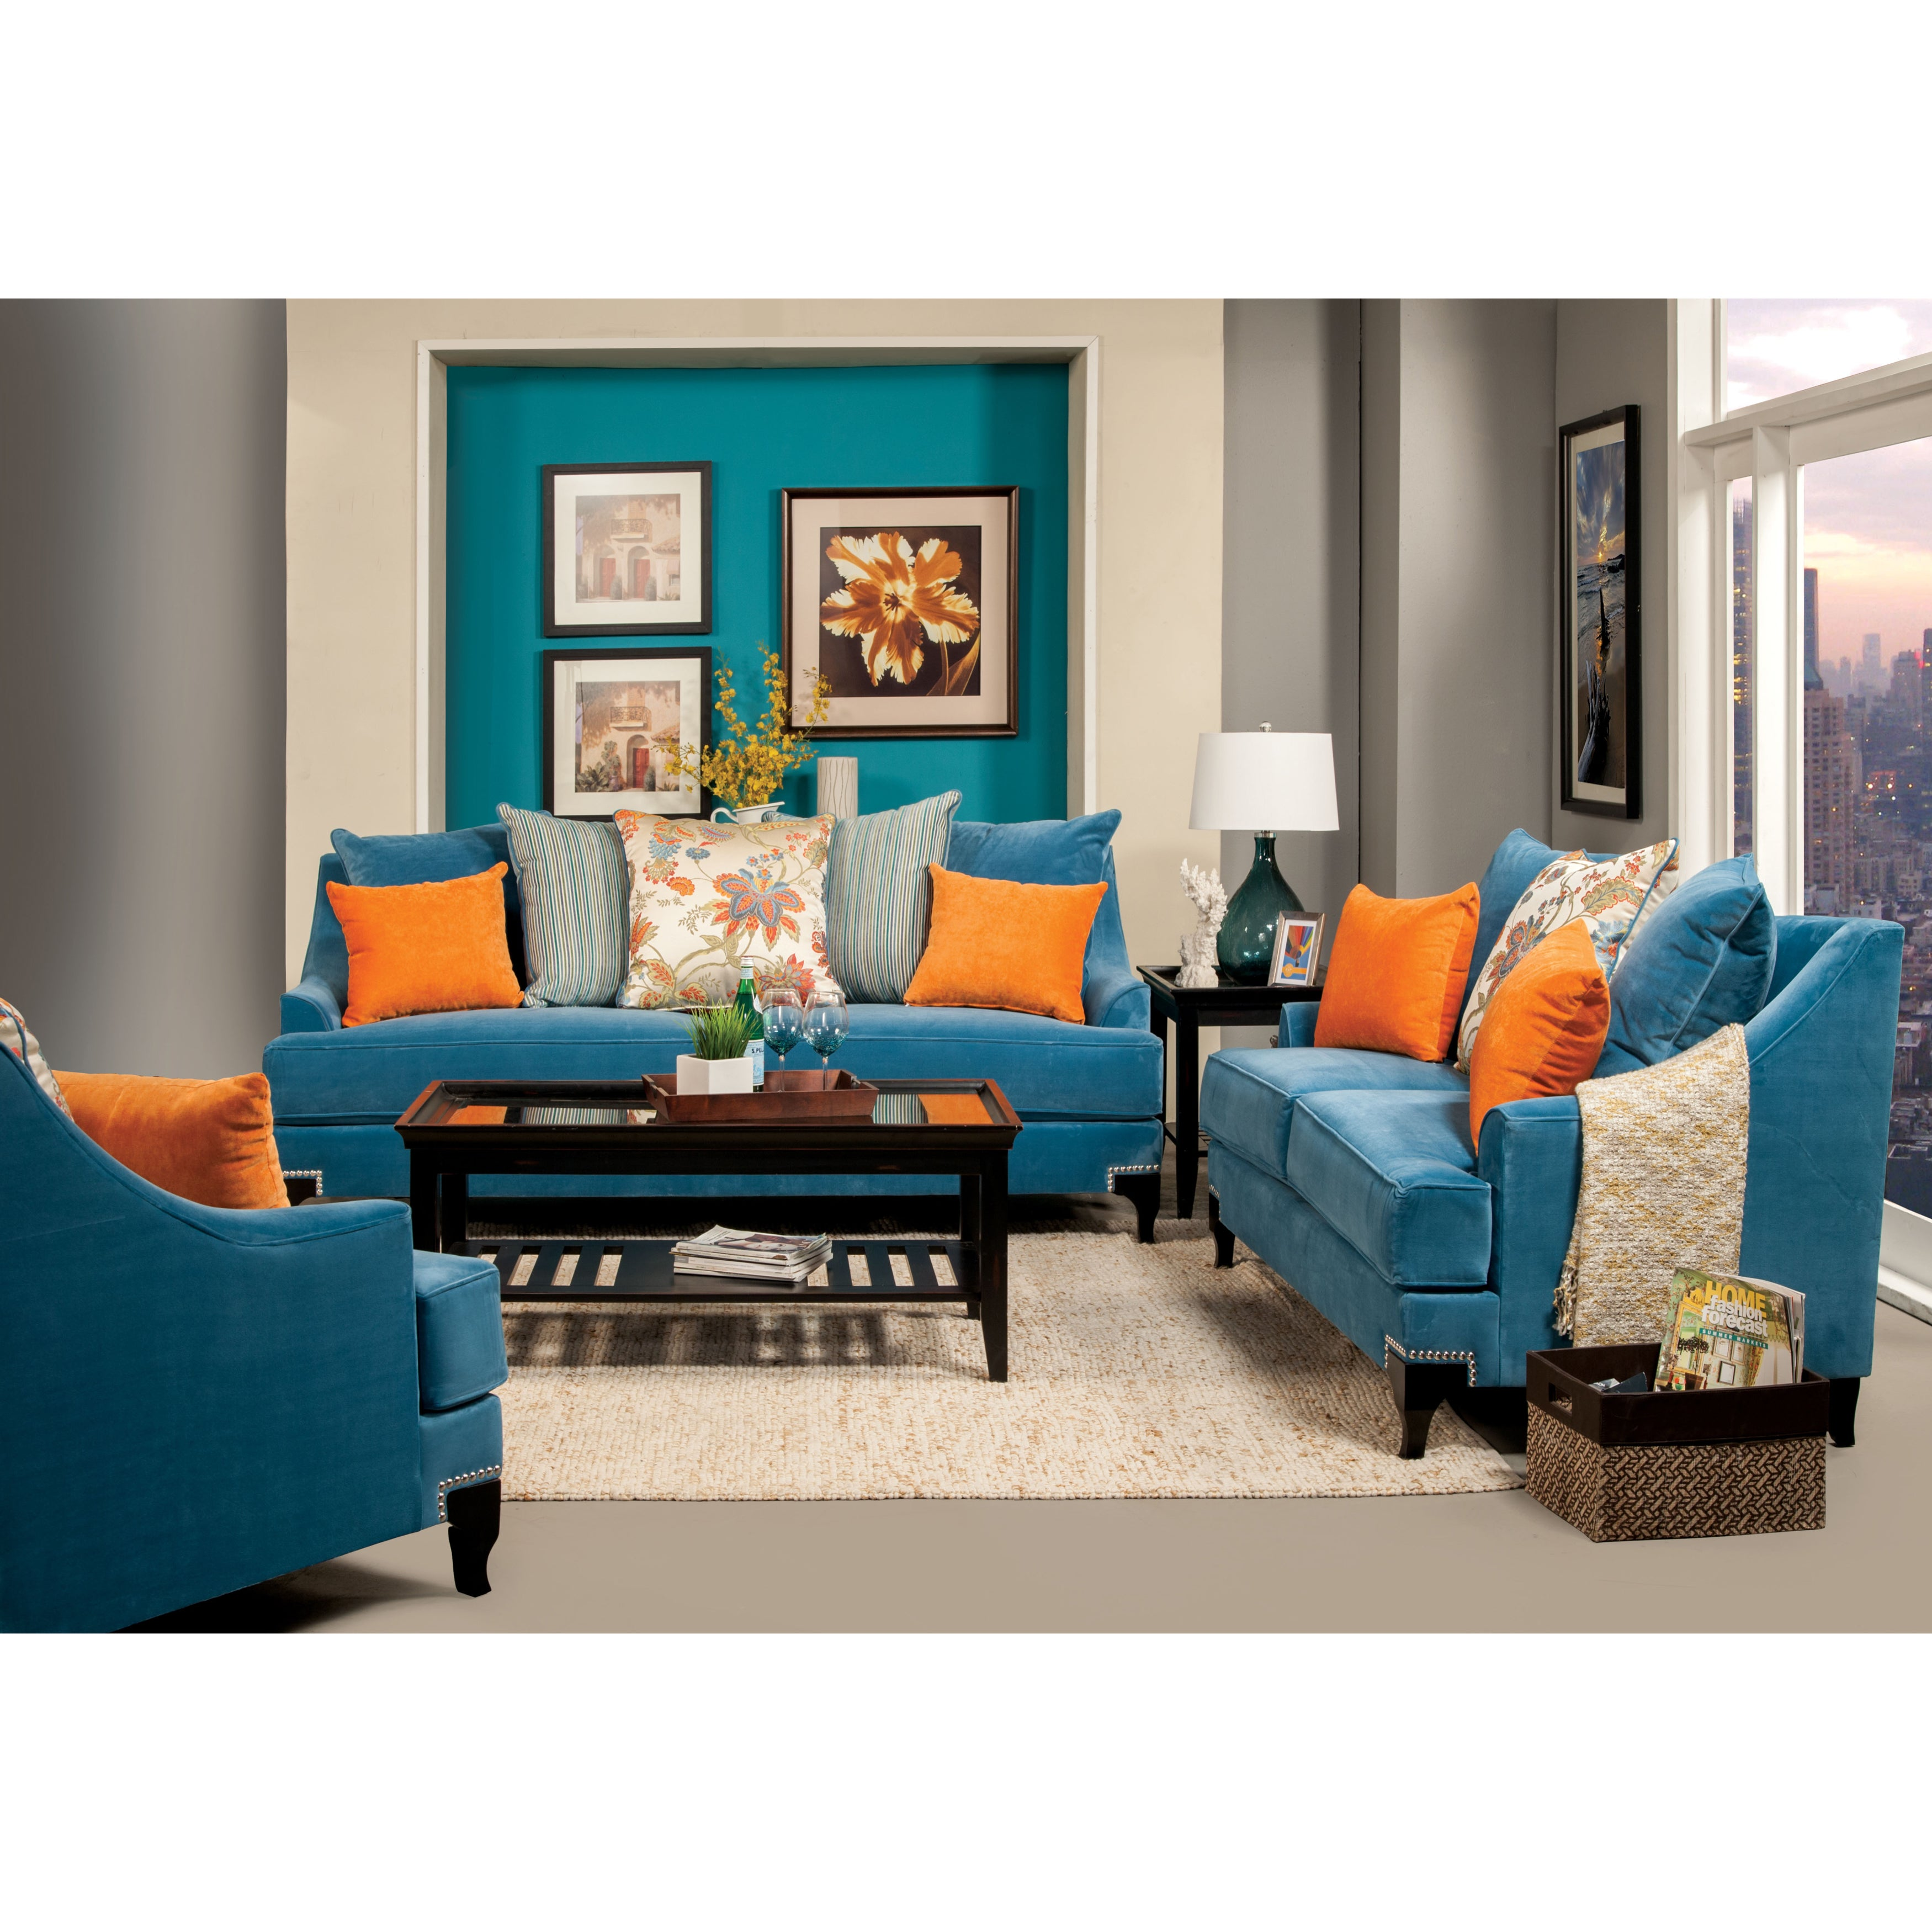 Blue Living Room Set New Ideas Stylish With Sofa 29 2400—1549